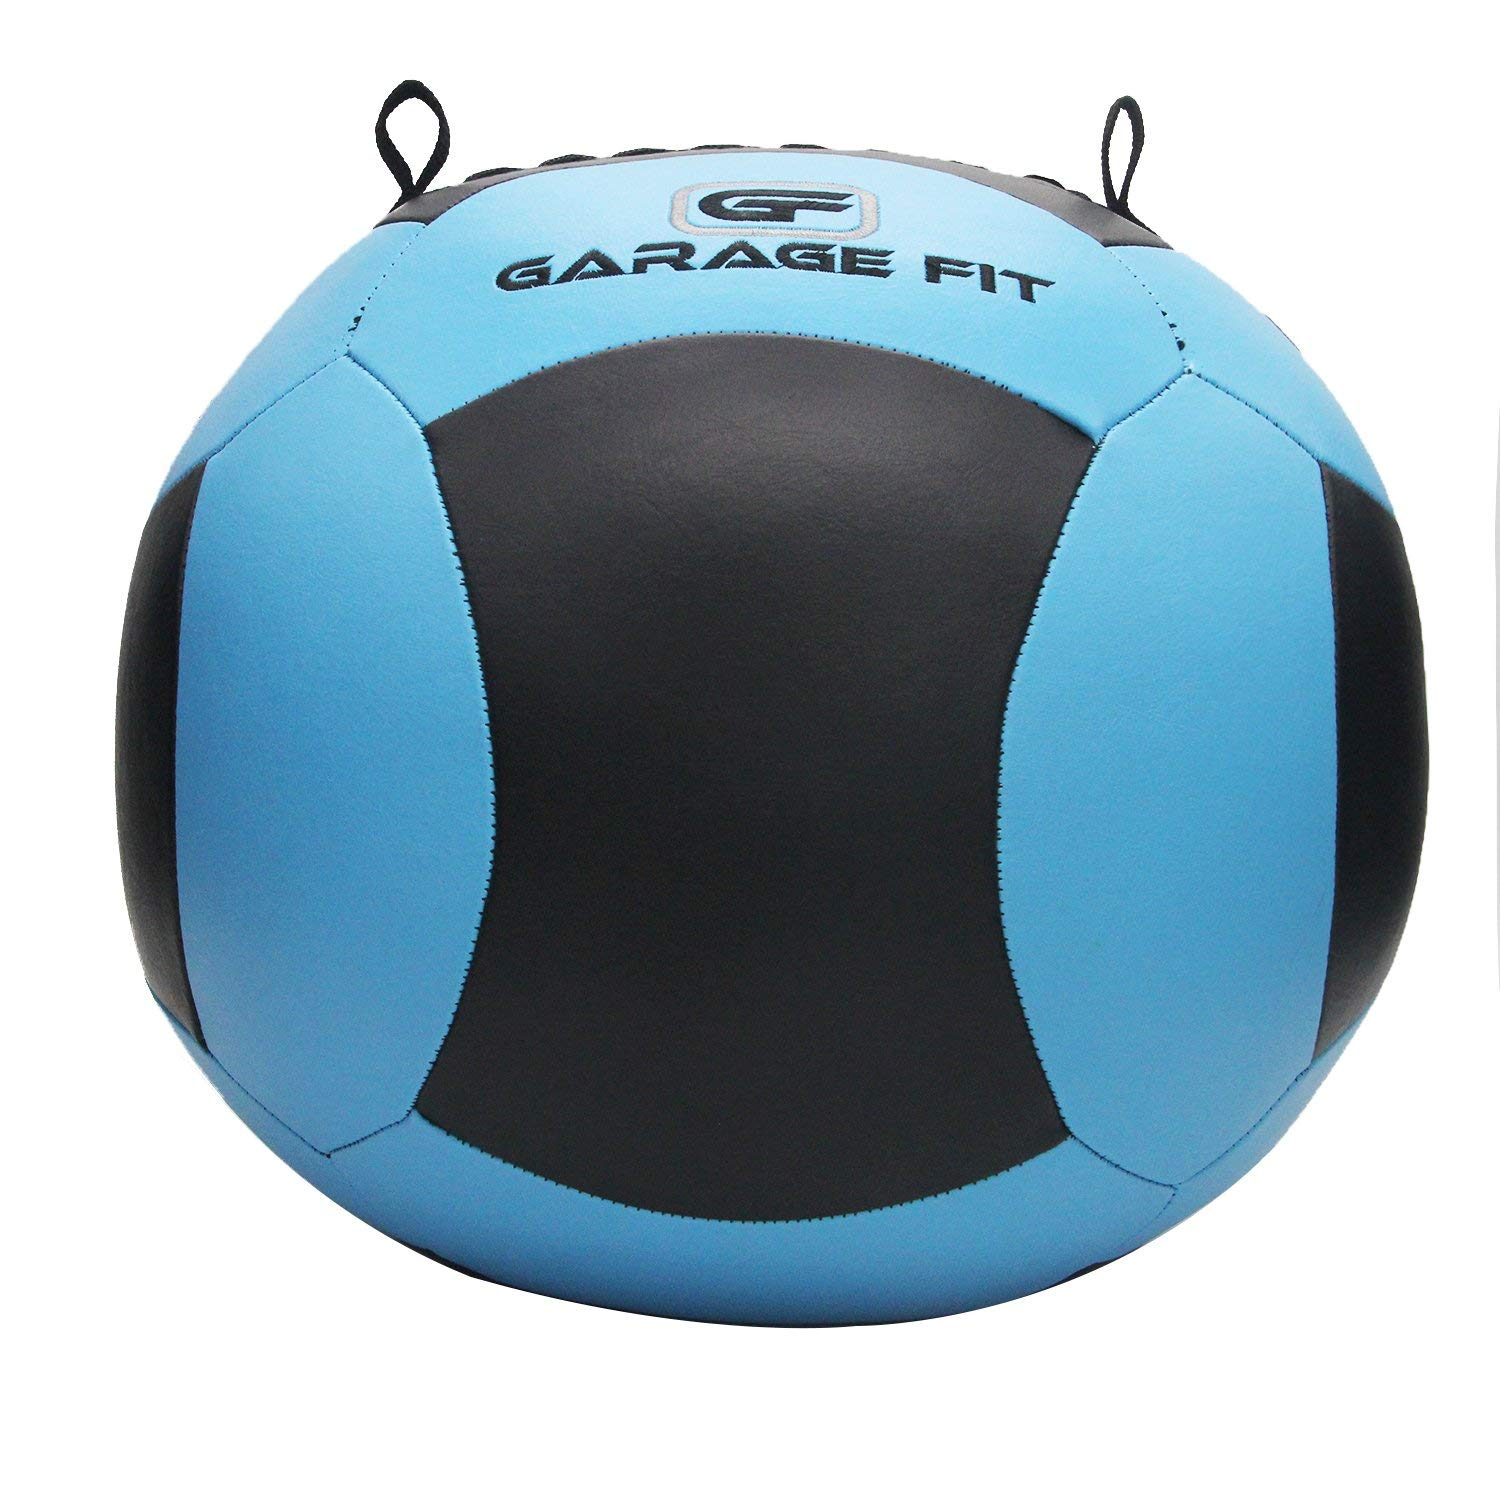 Garage Fit Wall Ball/WallBalls/Soft Medicine Balls/Wall Balls - 4, 6, 8, 10, 12, 14, 16, 18, 20, 25 and 30 Lbs - 1.8, 2.7, 3.6, 4.5, 5.5, 6.4, 7.3, 8.2, 9.1, 11.3, and 13.6 kg